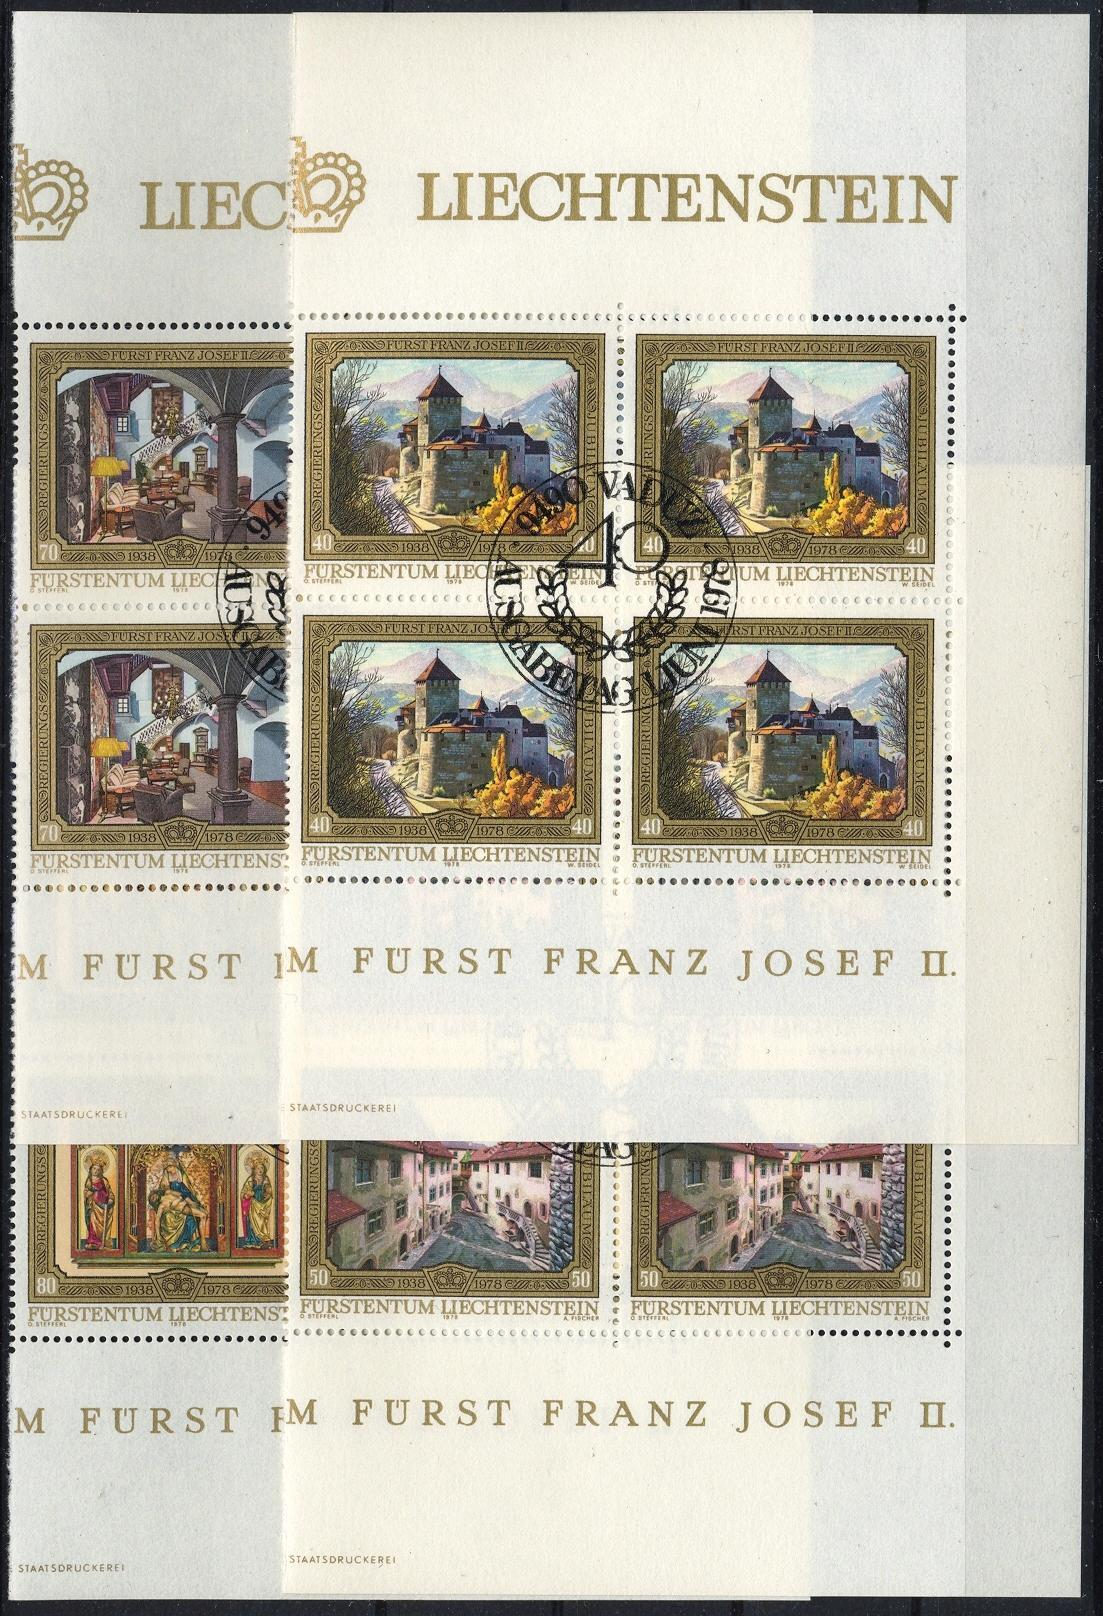 Stamps with Architecture, Castles from Liechtenstein (image for product #032220)